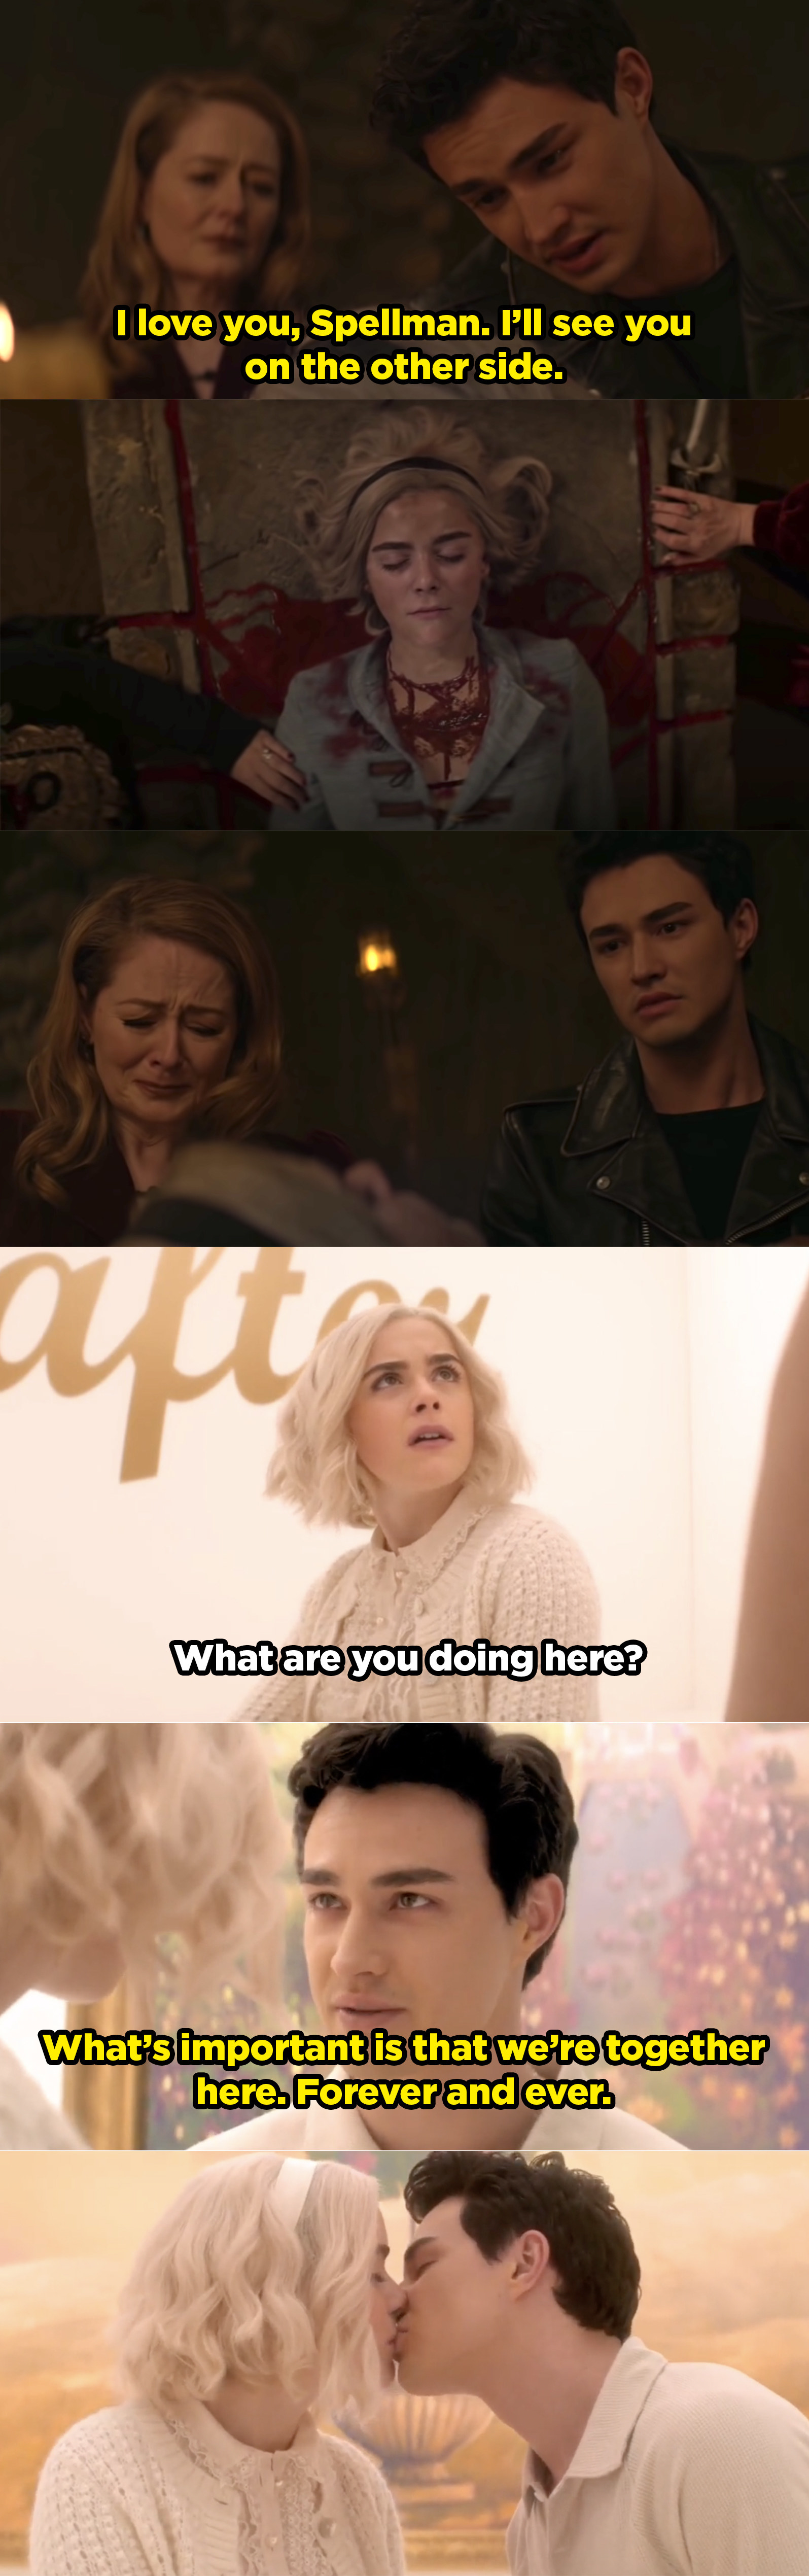 Sabrina dies and Nick is in shock so he decides to die by suicide to be with her in heaven. They meet up and he tells her they'll be together forever.